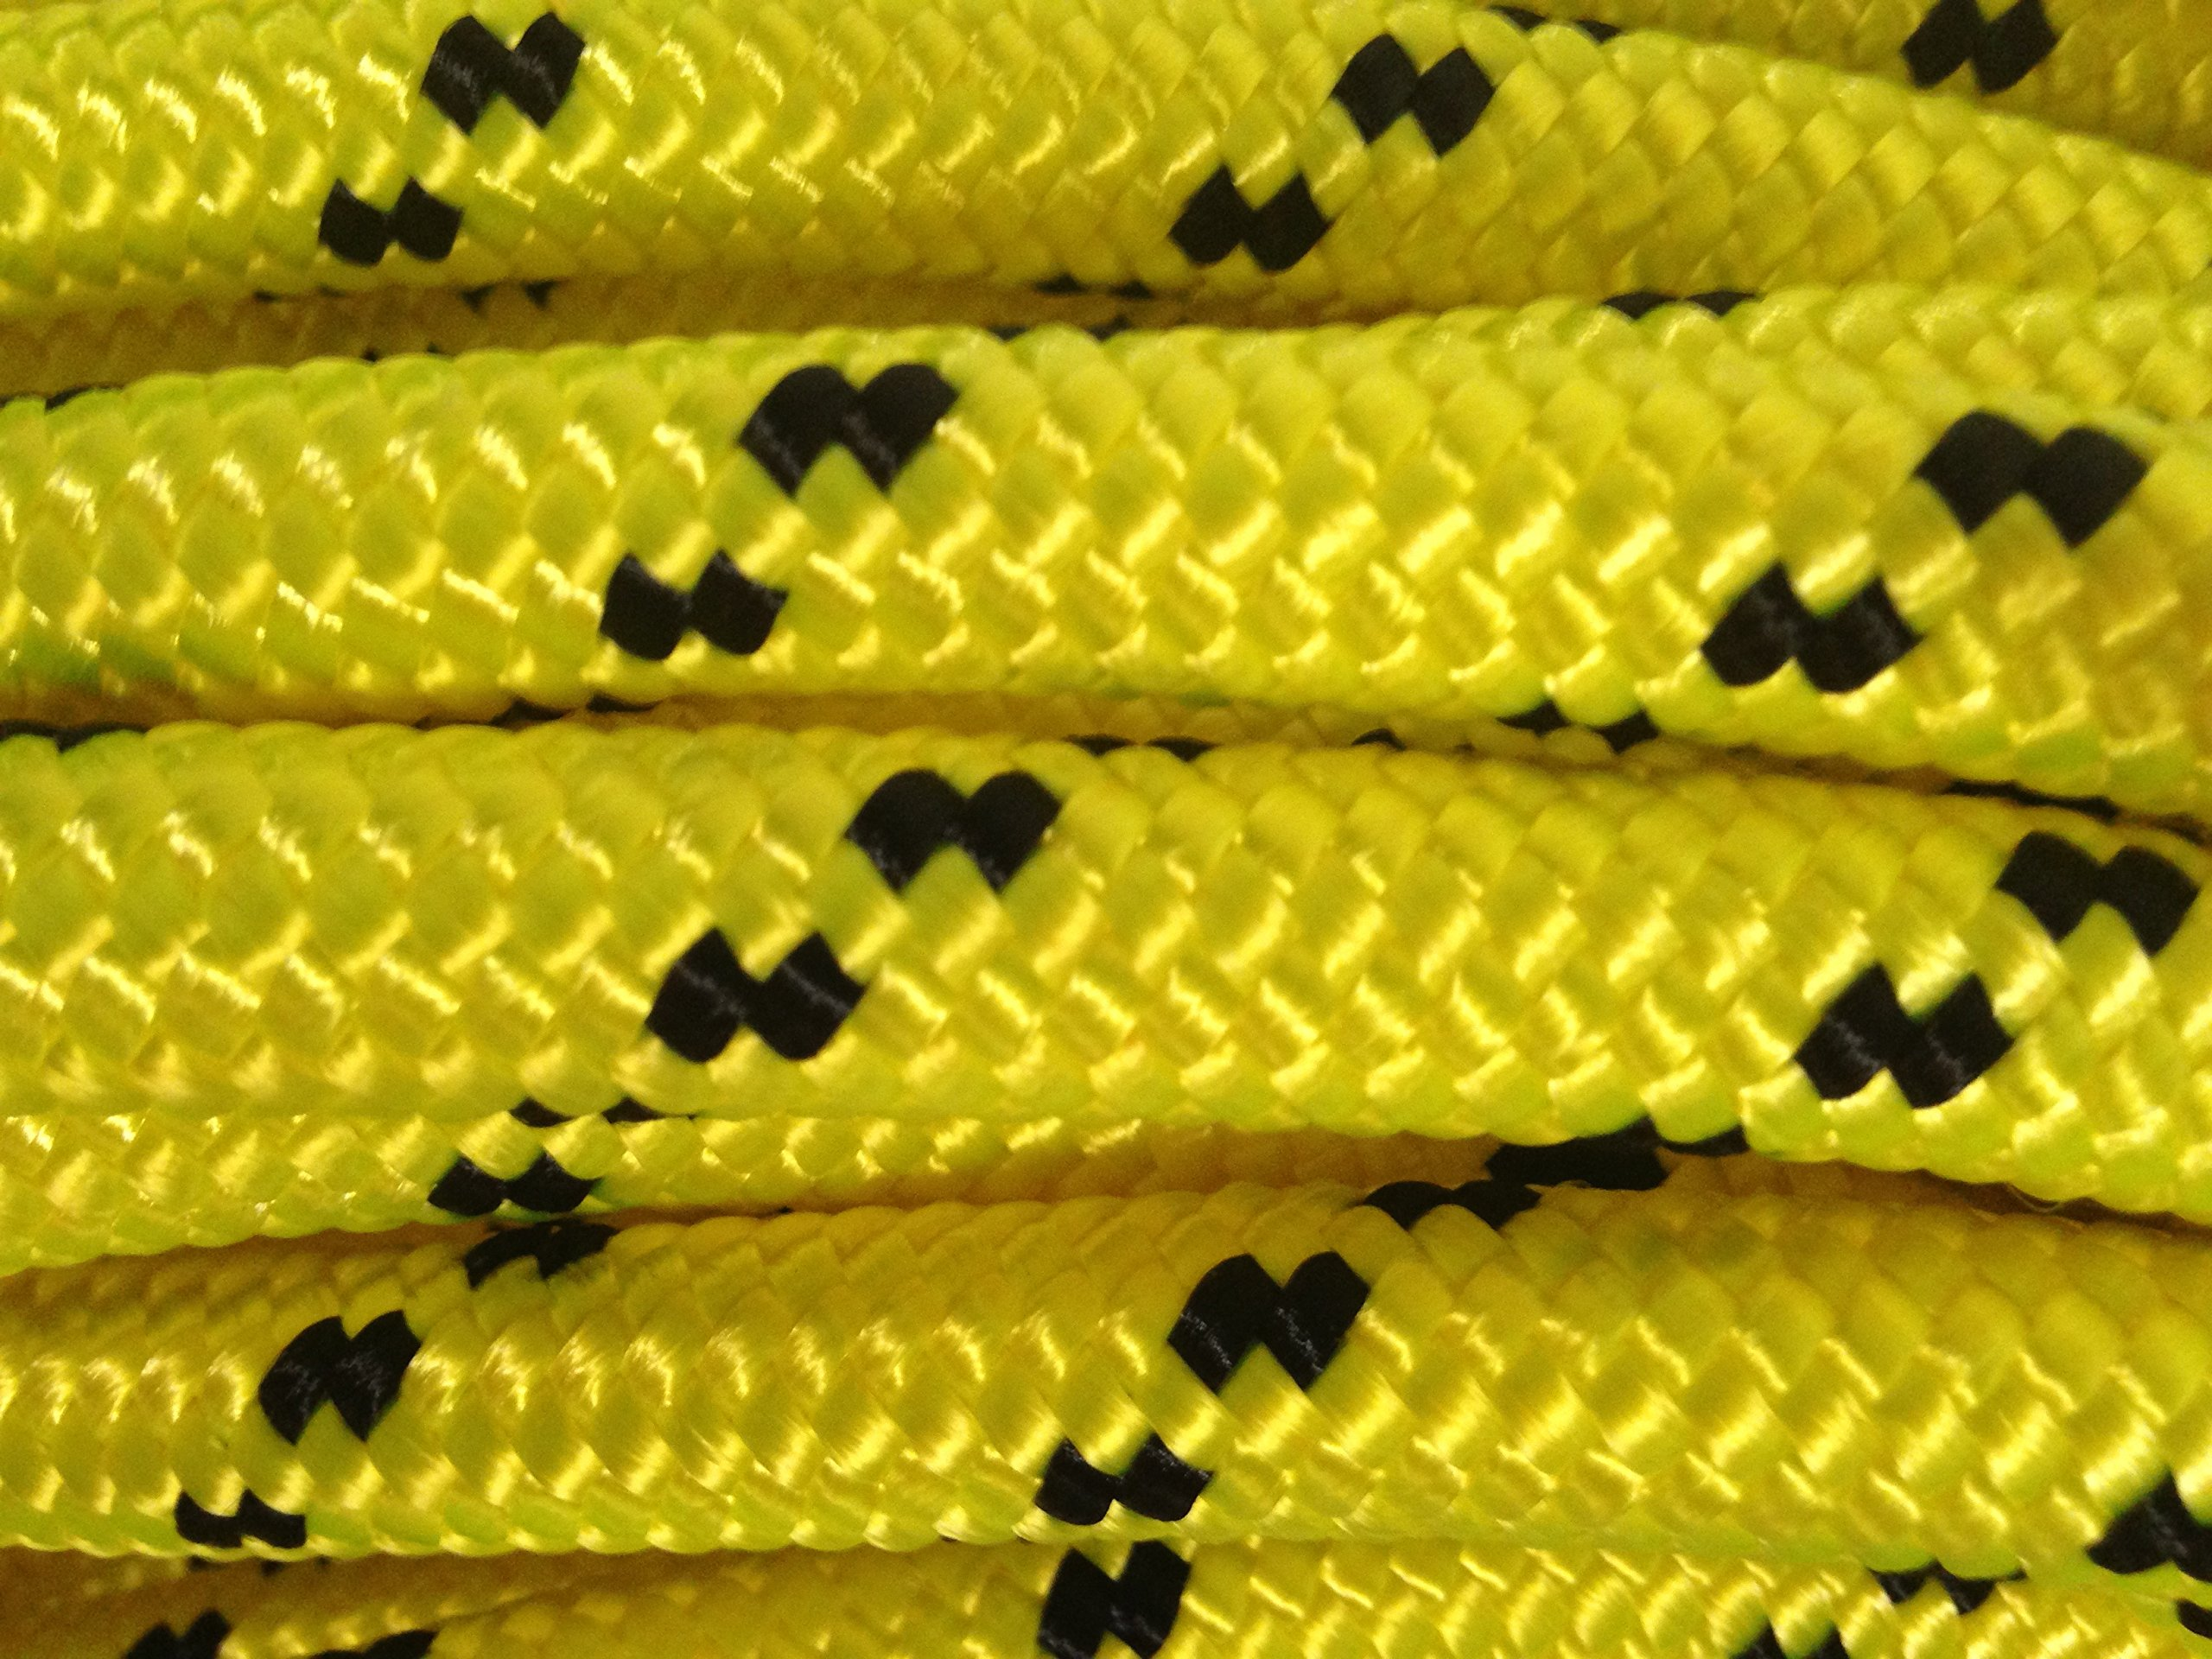 1/2 Inch by 100 Feet Arborist Rigging Rope, Yellow by Blue Ox Rope